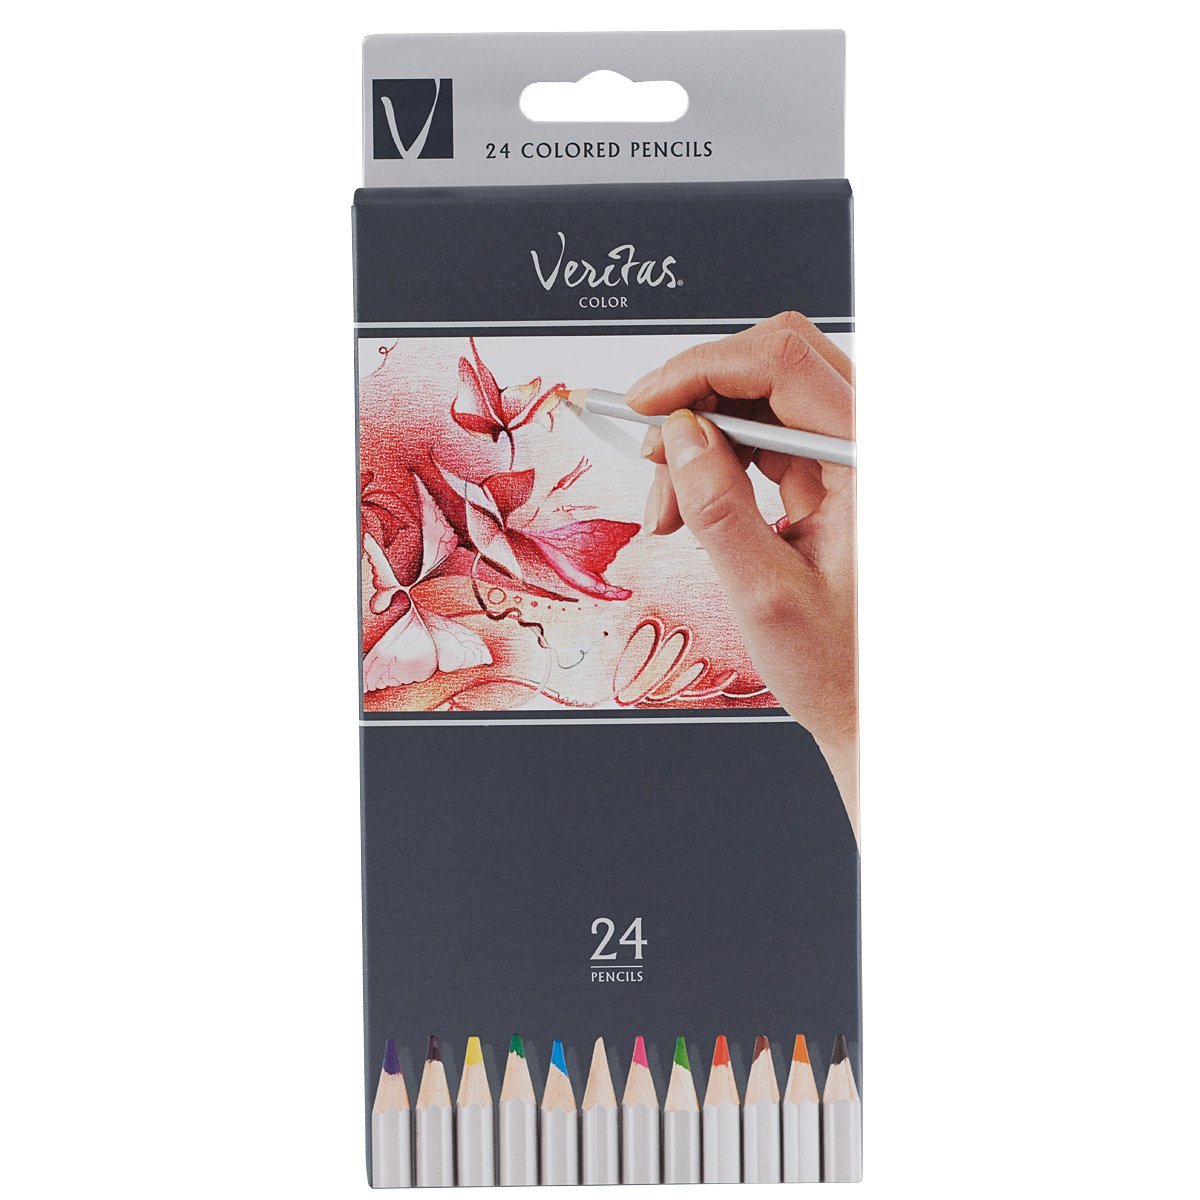 Veritas Colors Art & Craft Colored Pencils (Assorted Colors 24-Count Pack)